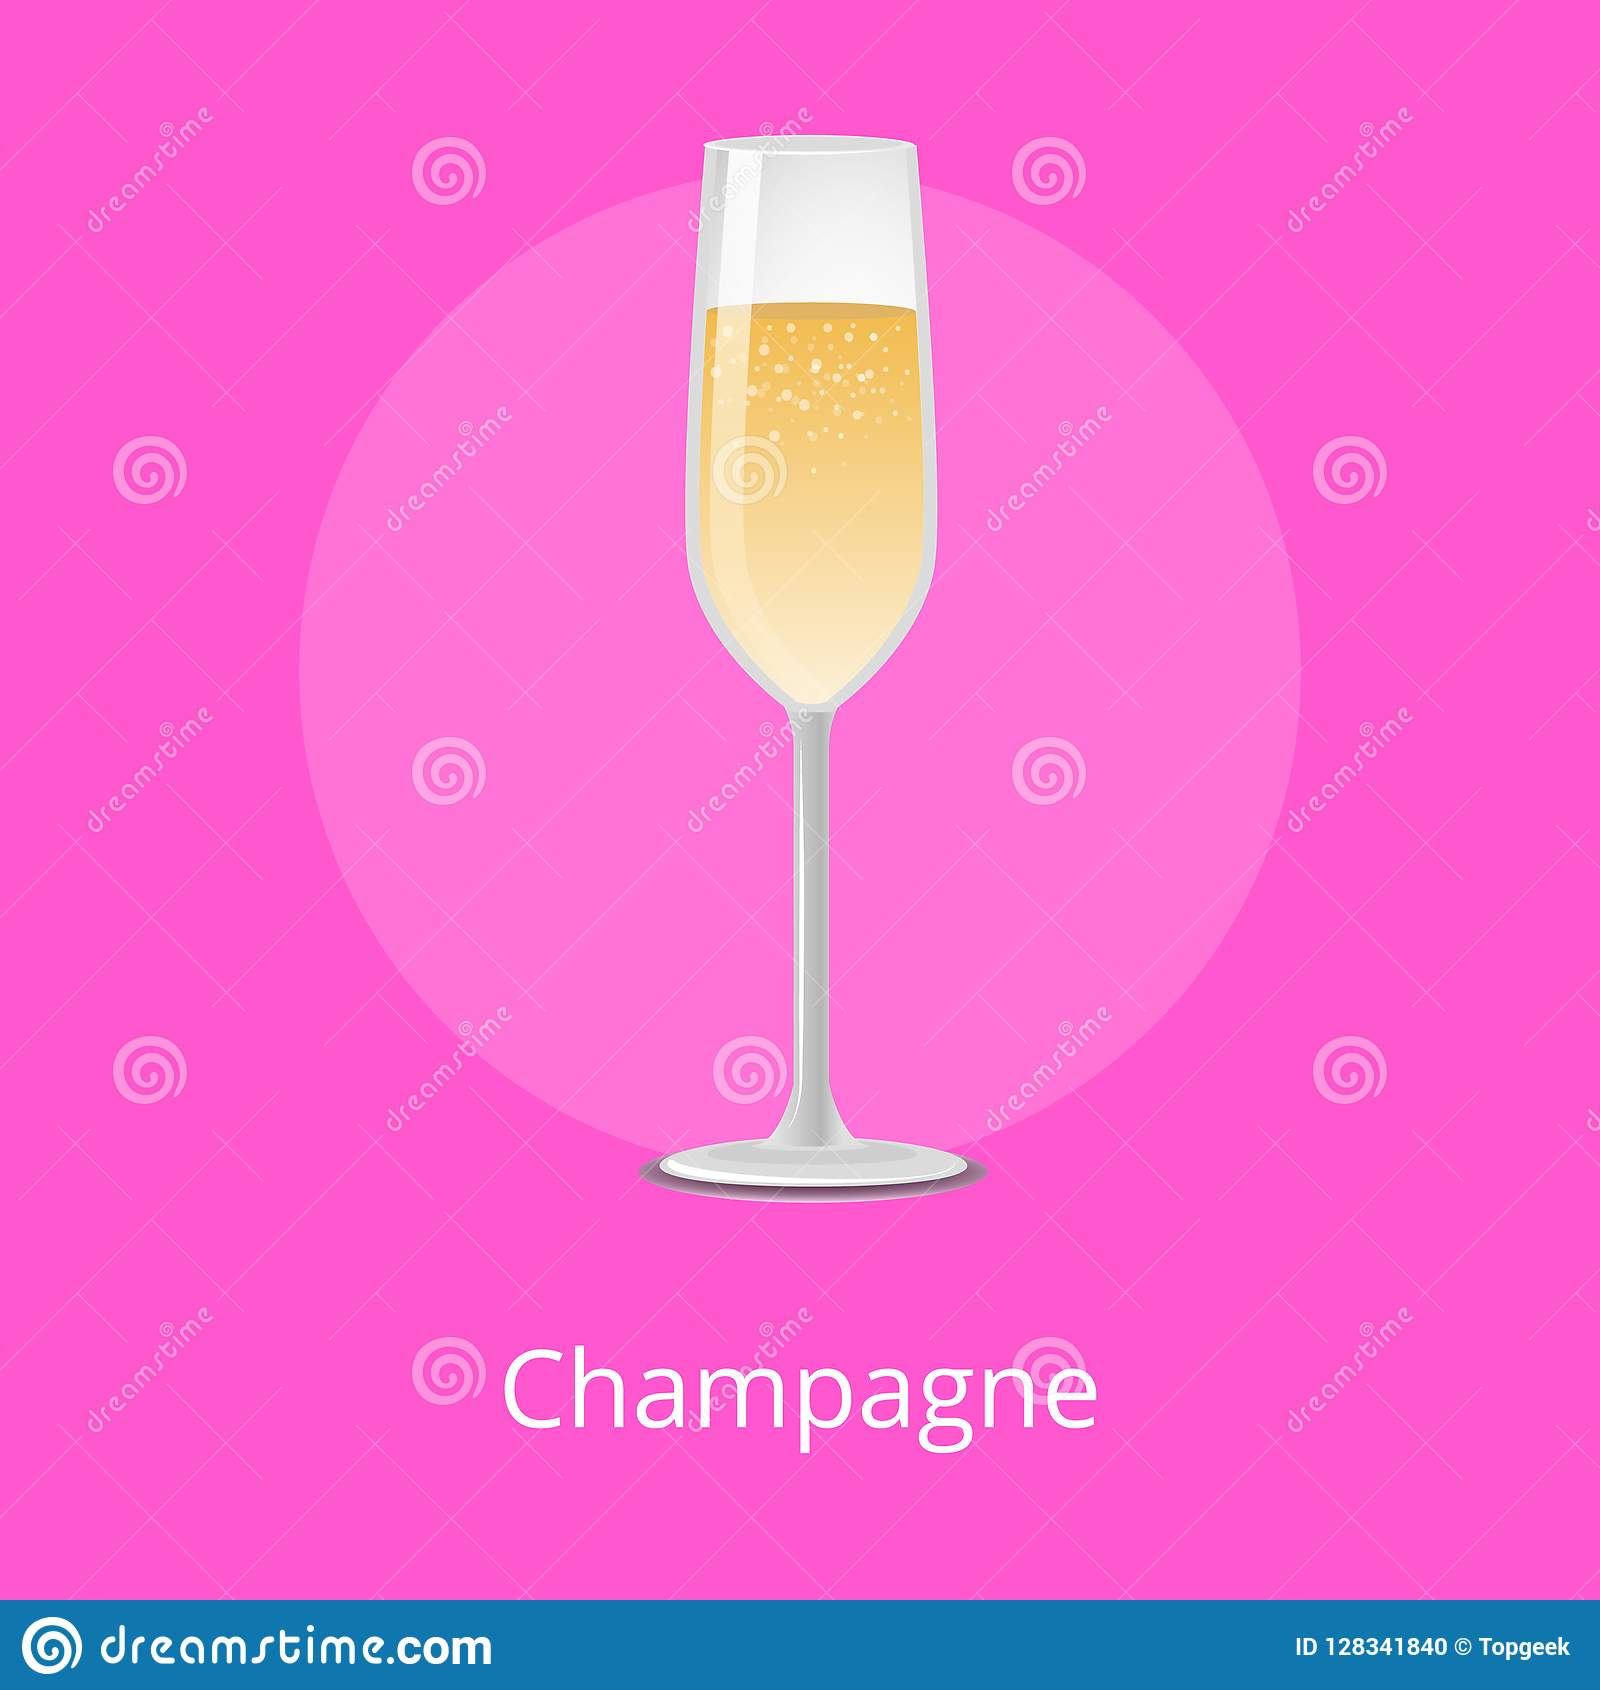 Champagne Classical Luxury Alcohol Drink-Glaswaren